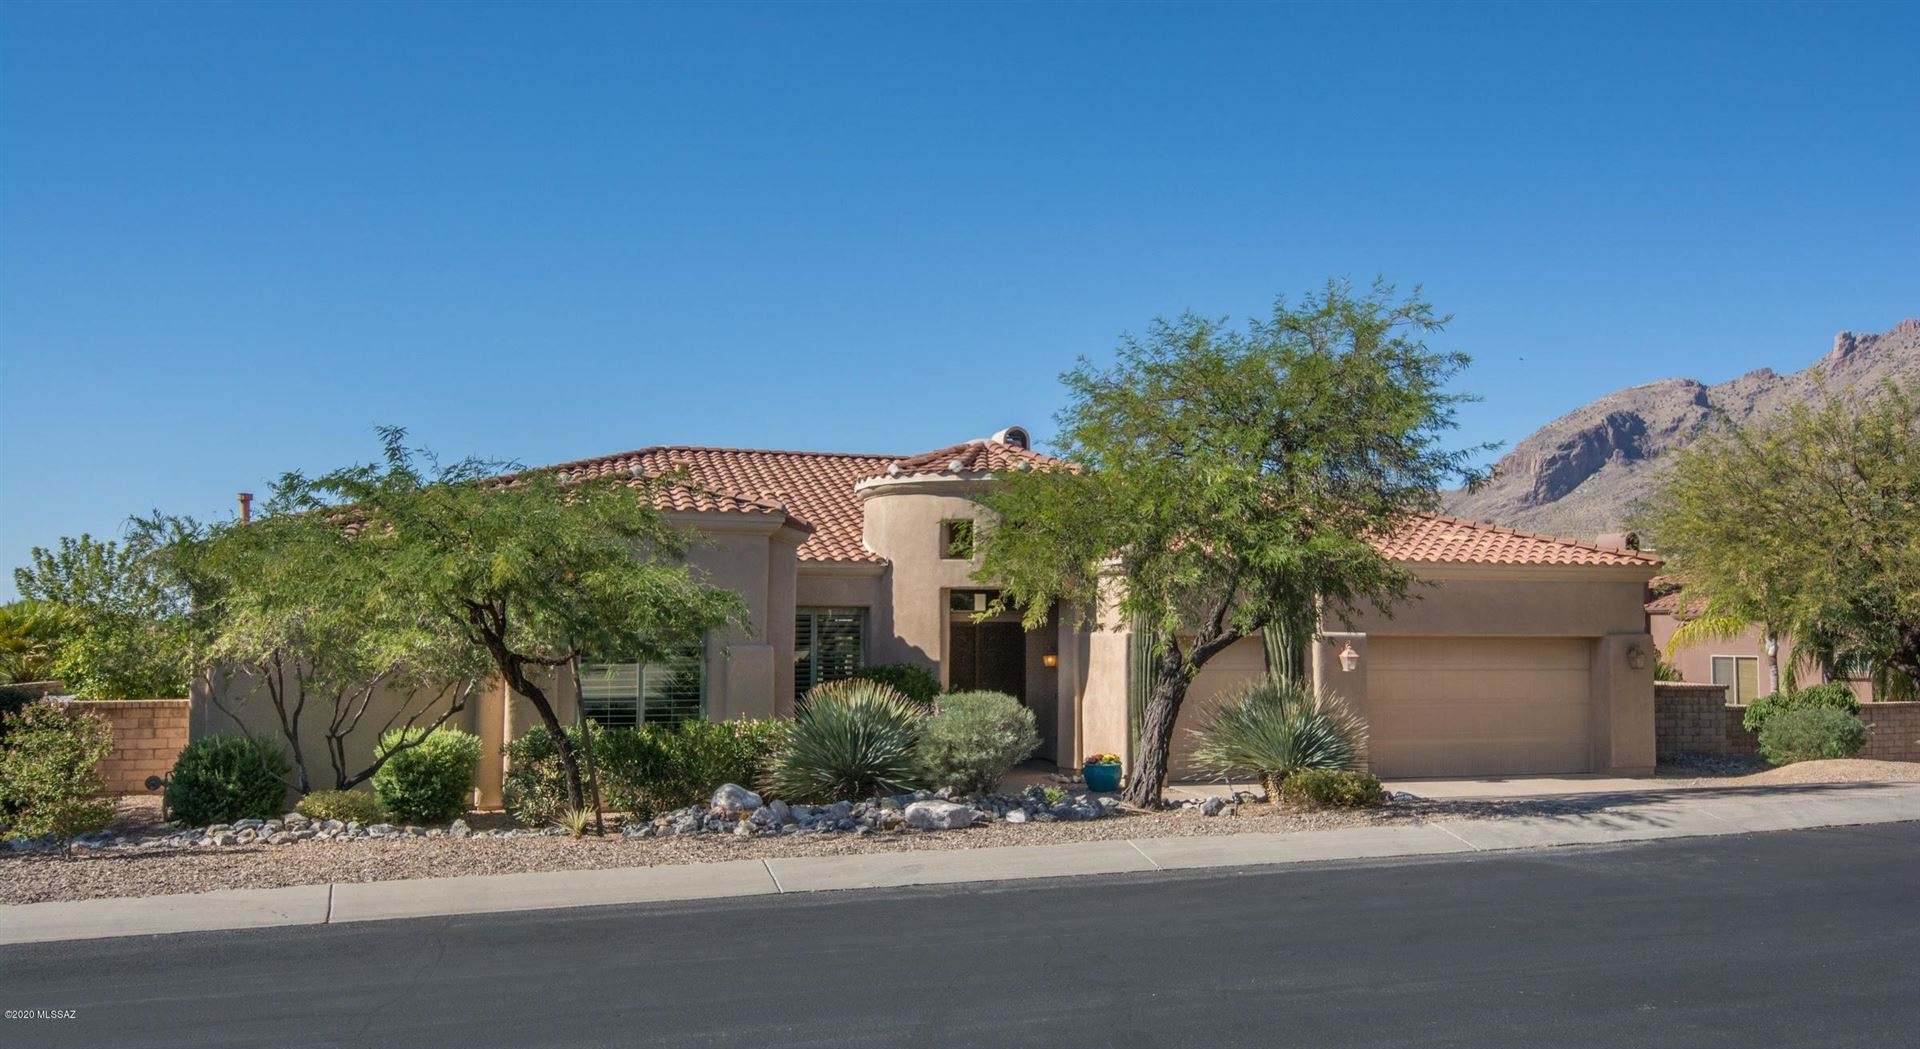 6143 N Pinnacle Ridge Drive, Tucson, AZ 85718 - #: 22015707